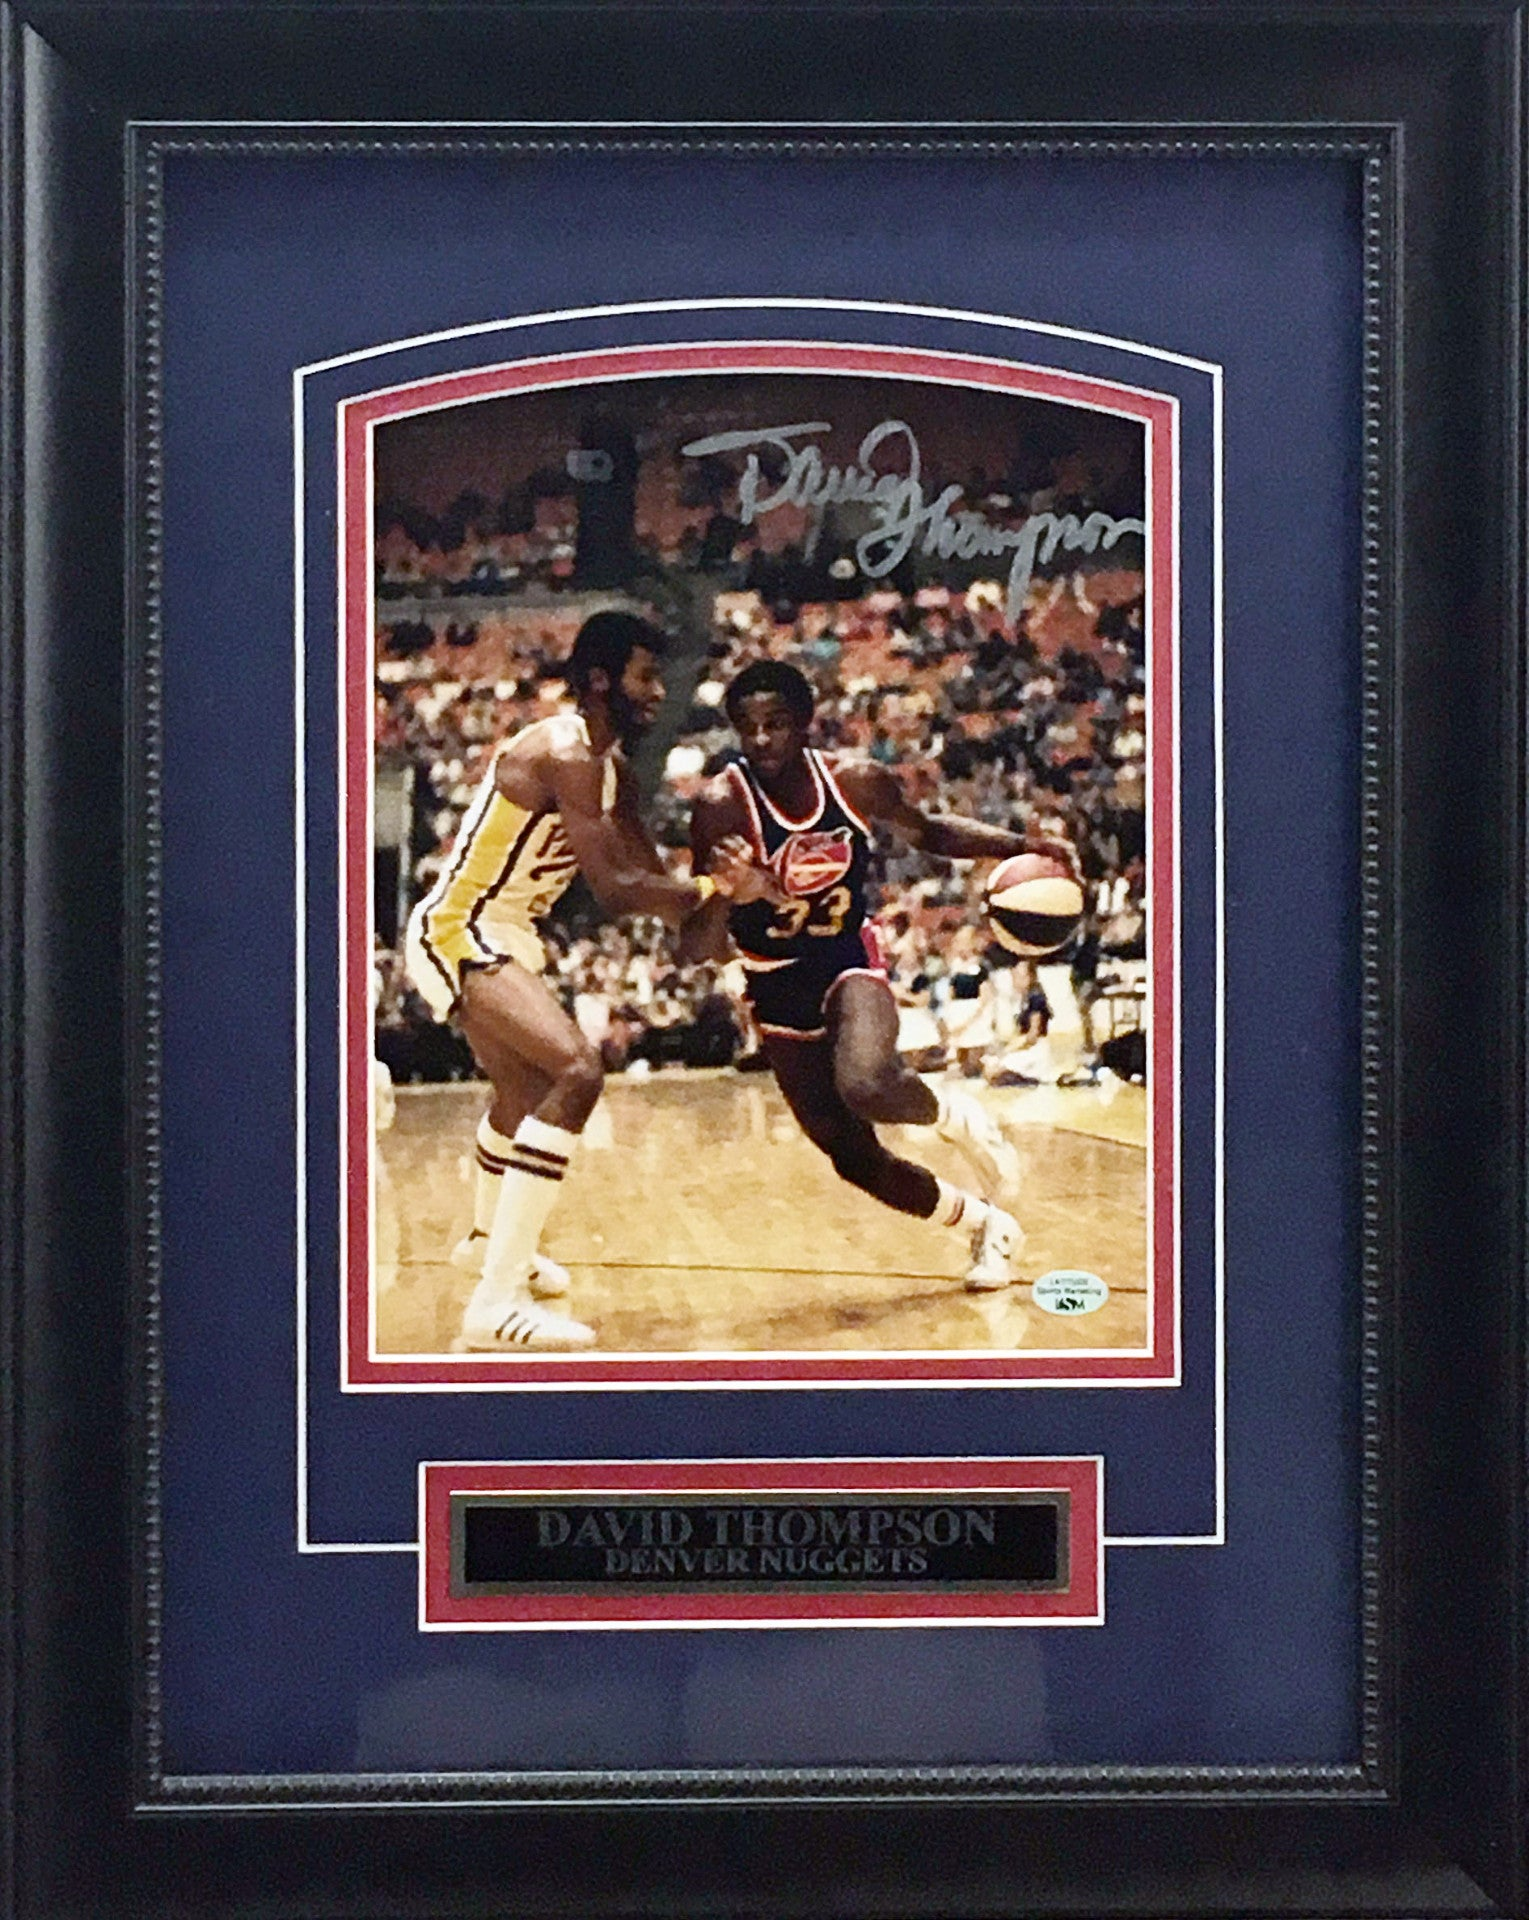 David Thompson Signed Photo - Deluxe Framing